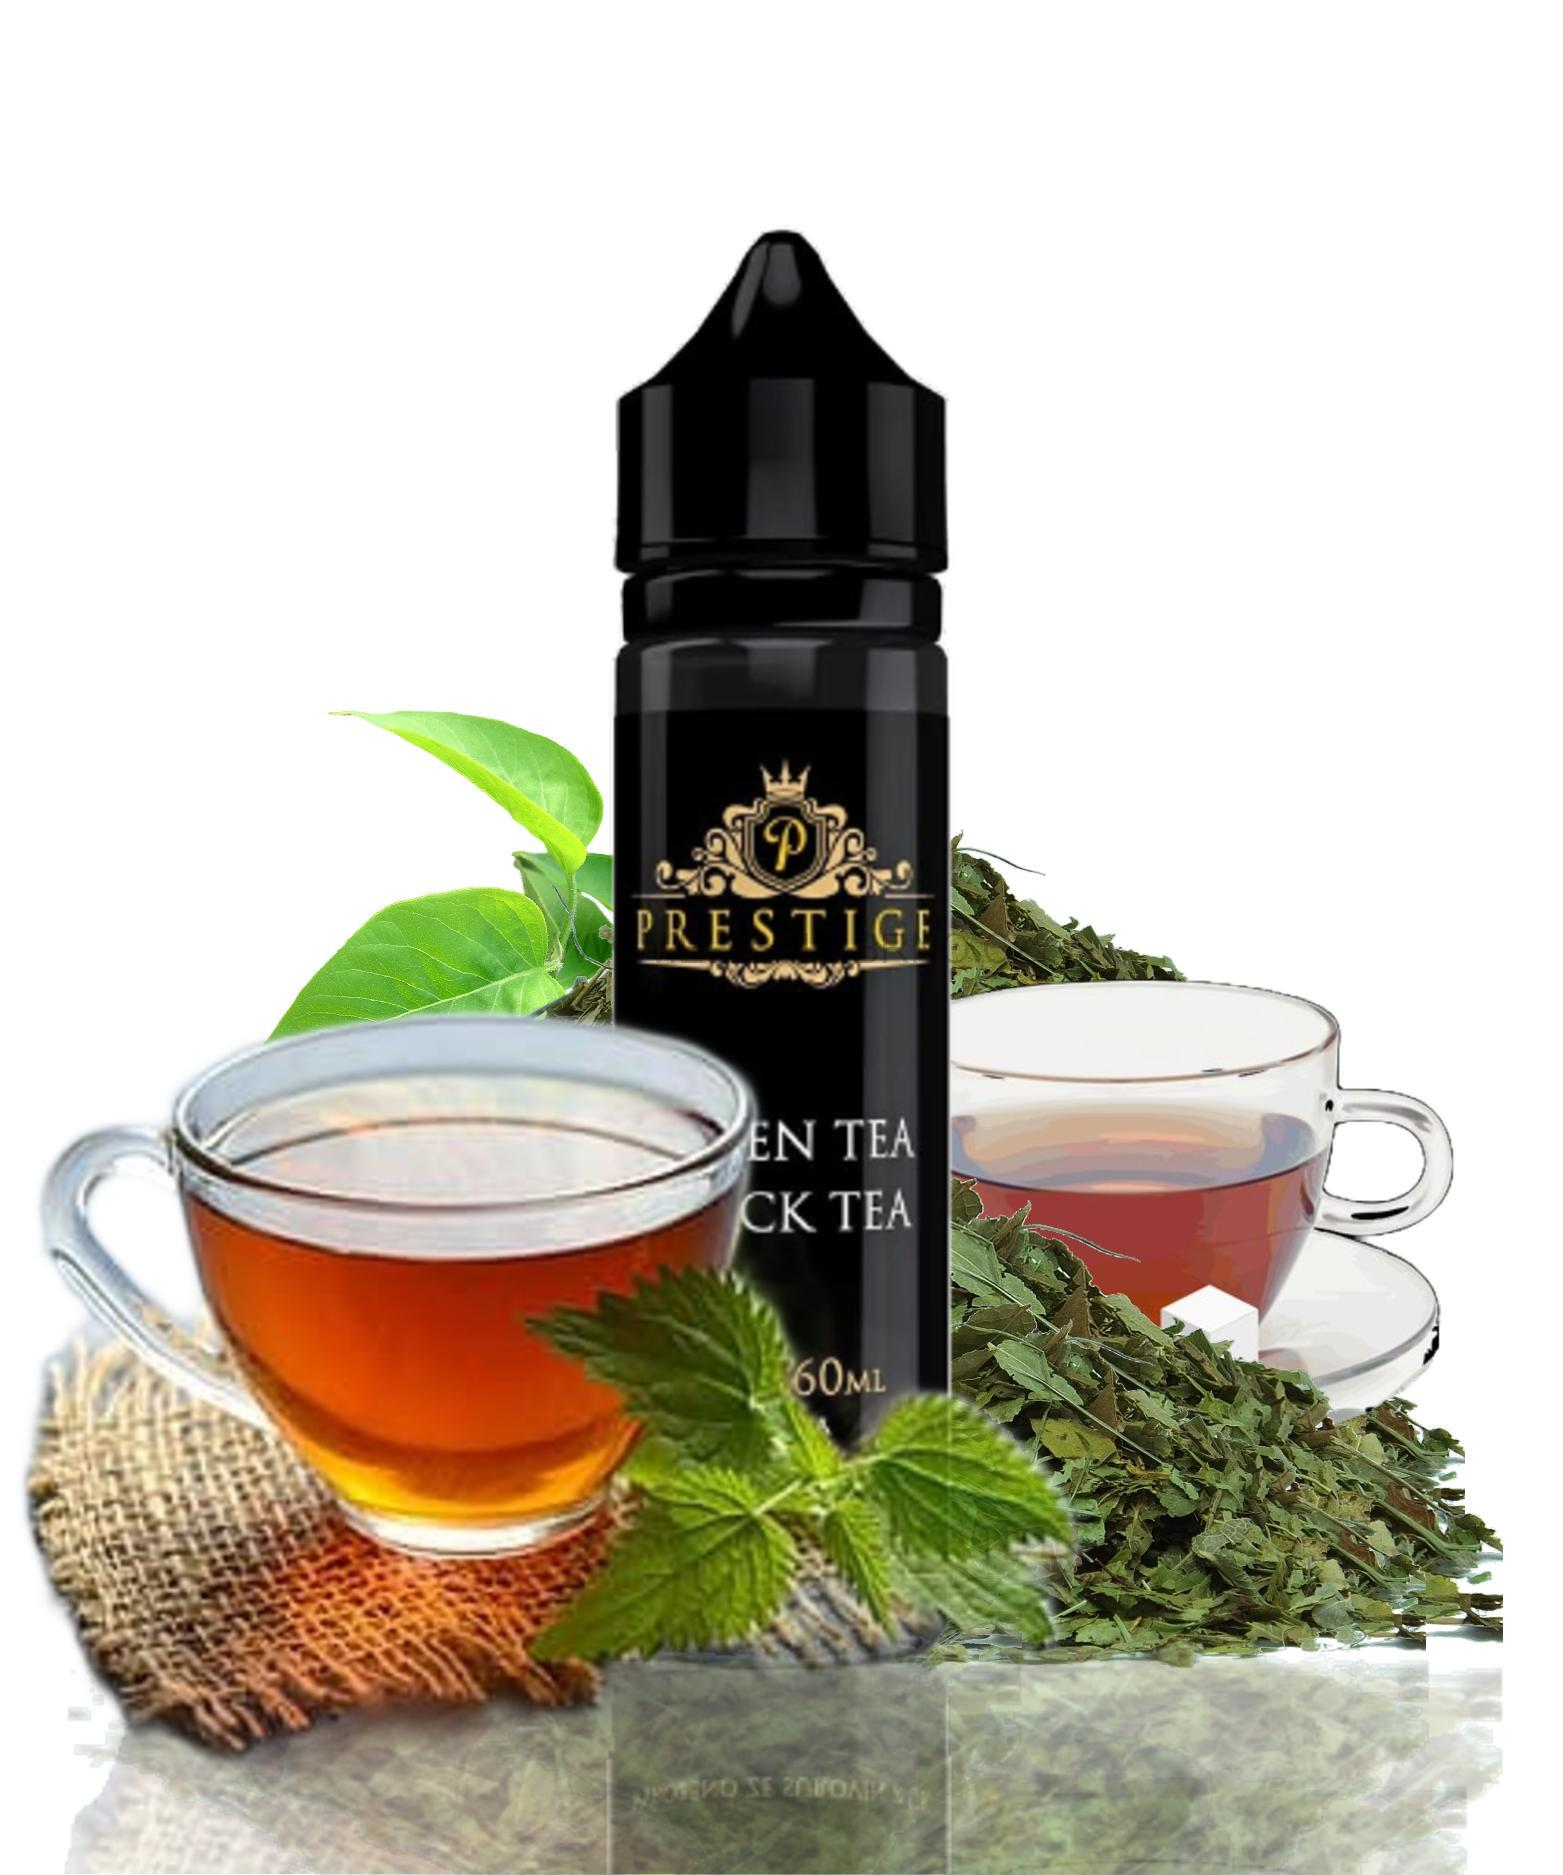 10 ml Prestige - Green Tea Black Tea (Shake & Vape)